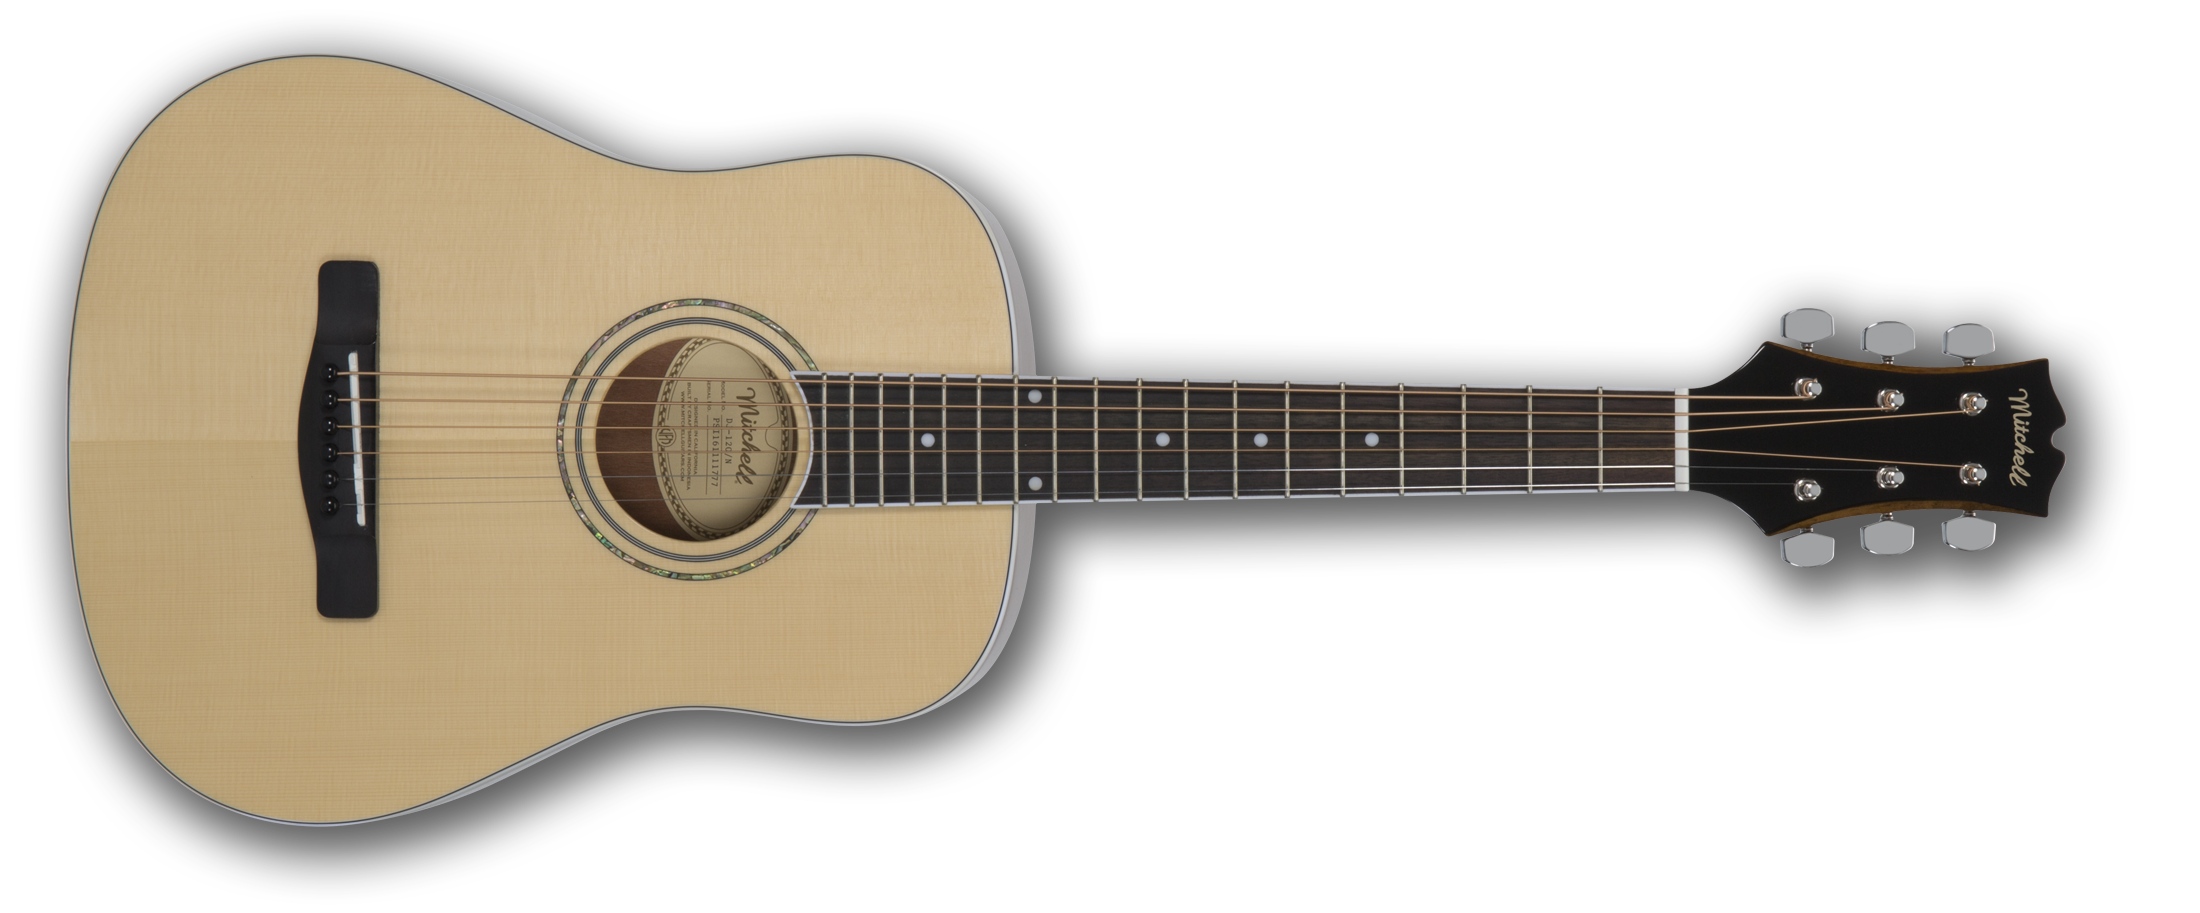 Mitchell DJ120 Mini-Dreadnought Solid-Top Spruce Acoustic Guitar